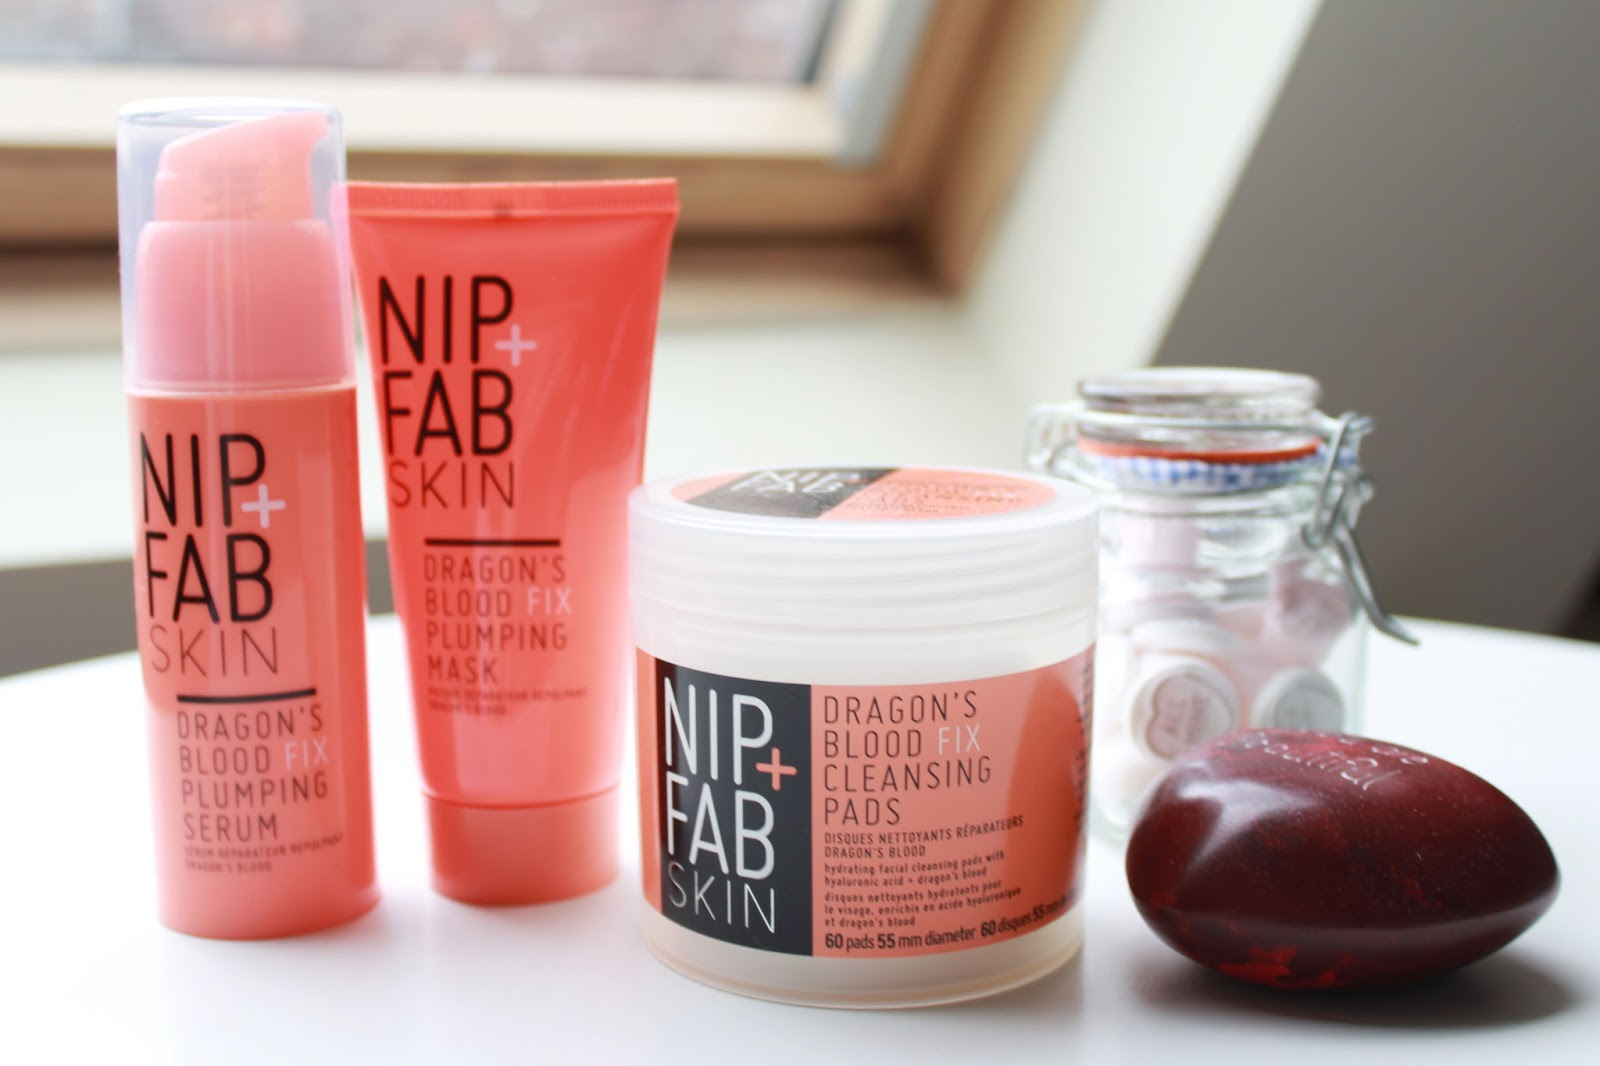 Nip + Fab Dragons Blood Range